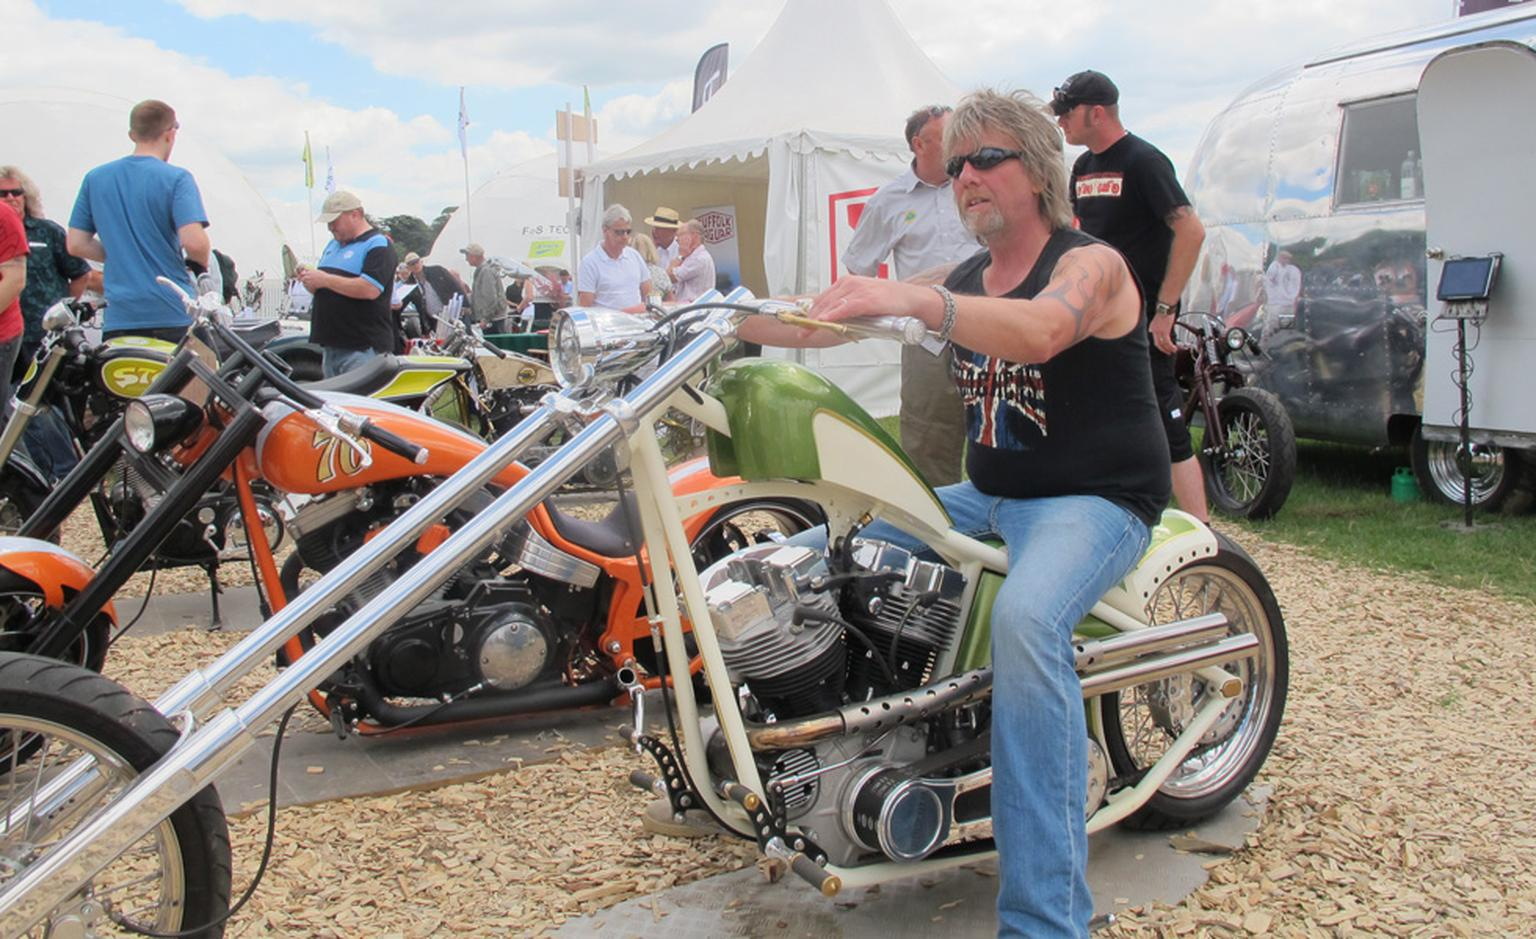 One of Crazy Horse's customised machines.